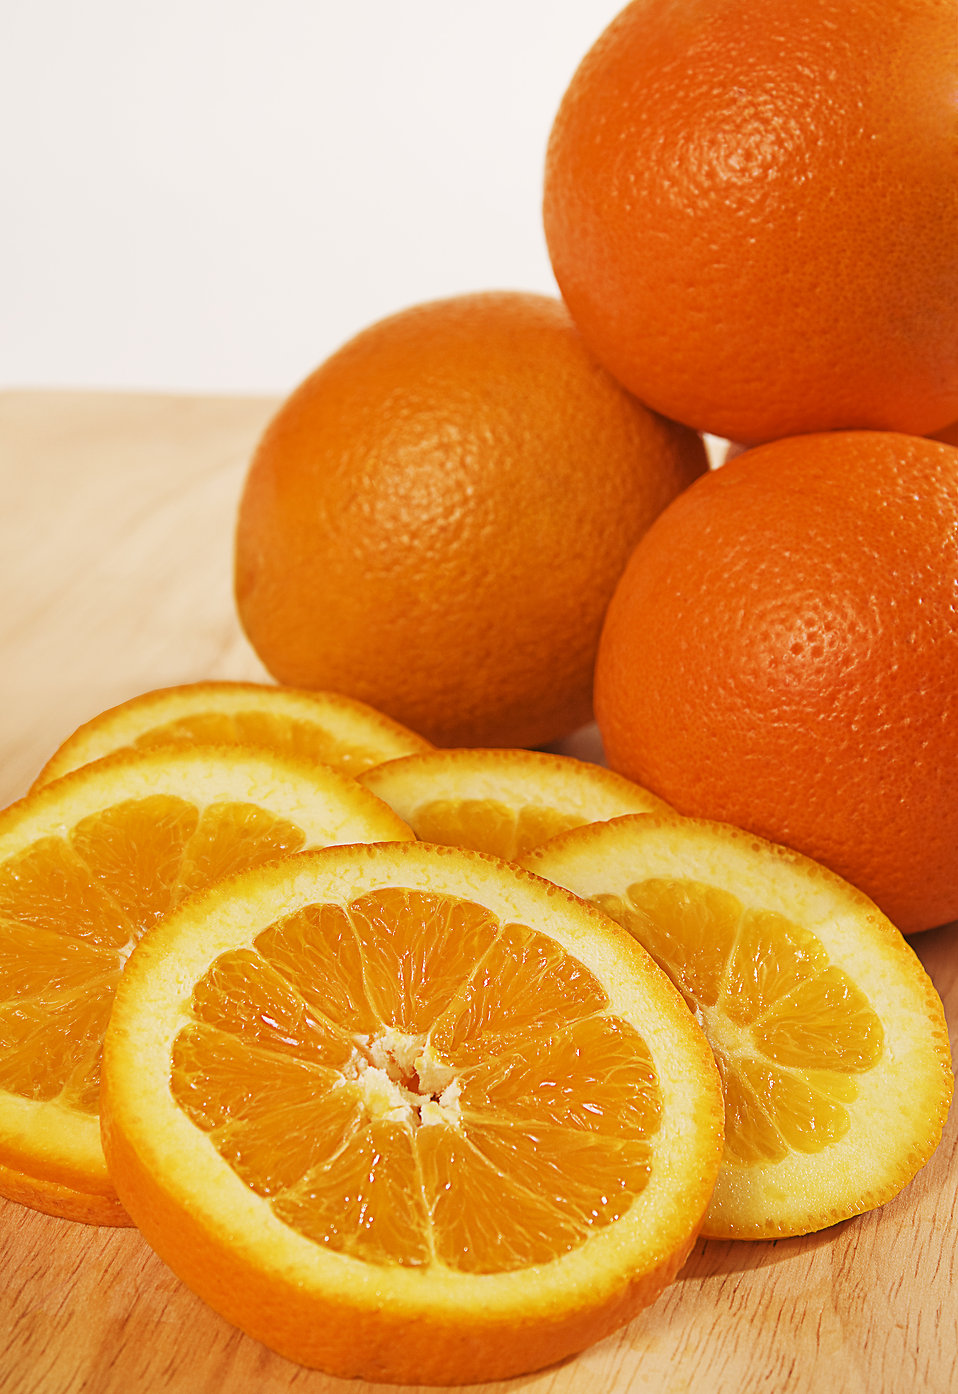 Orange slices on a cutting board : Free Stock Photo